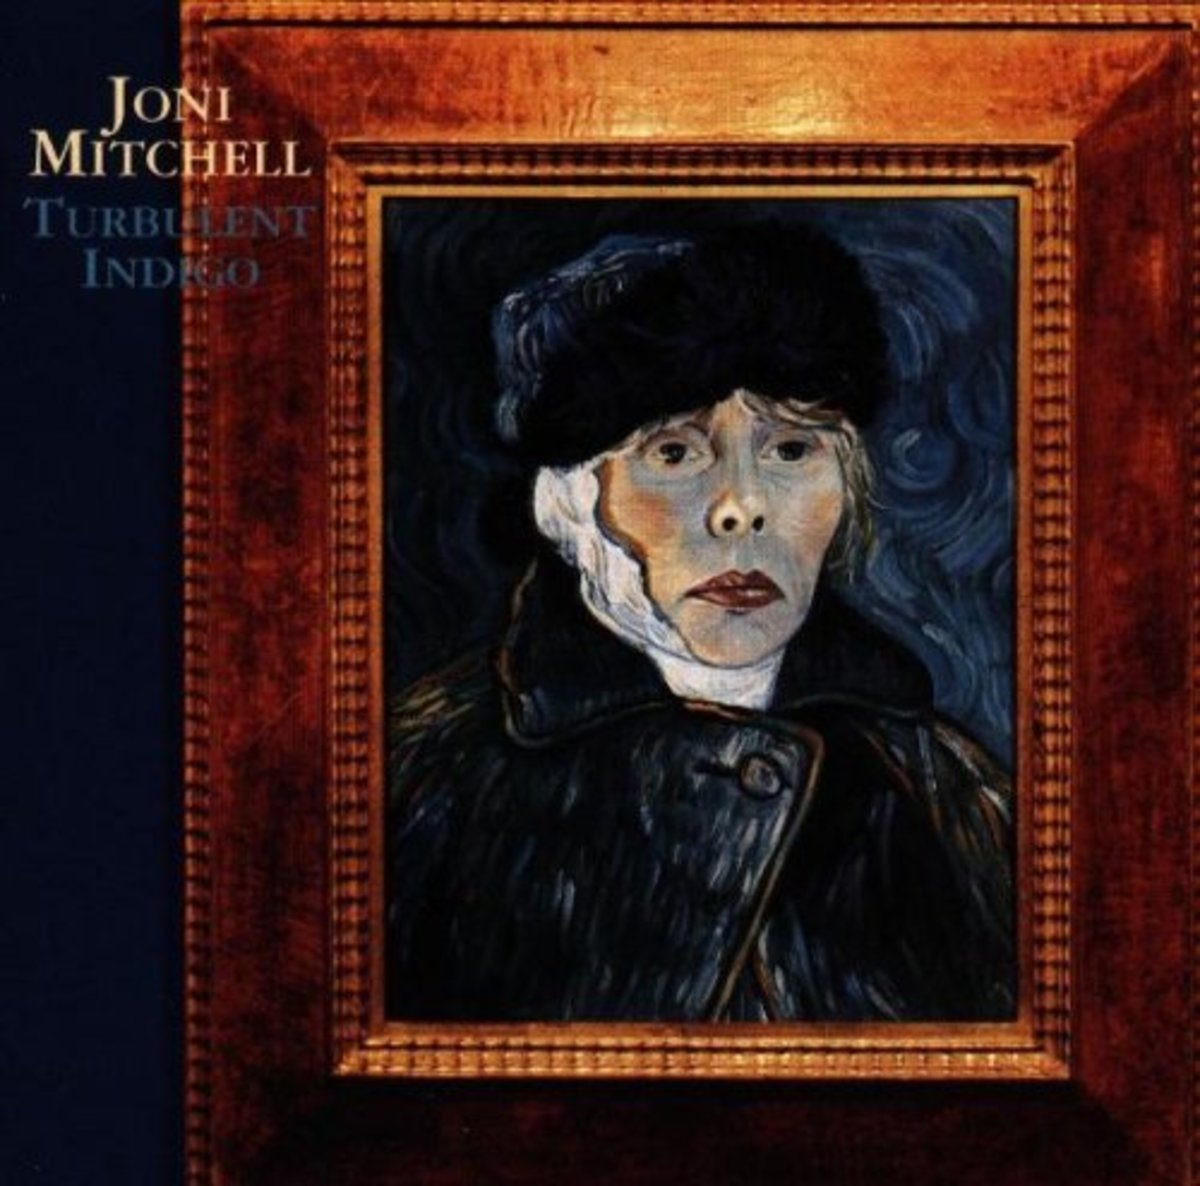 This Van Gogh parody for Turbulent Indigo was created by Joni